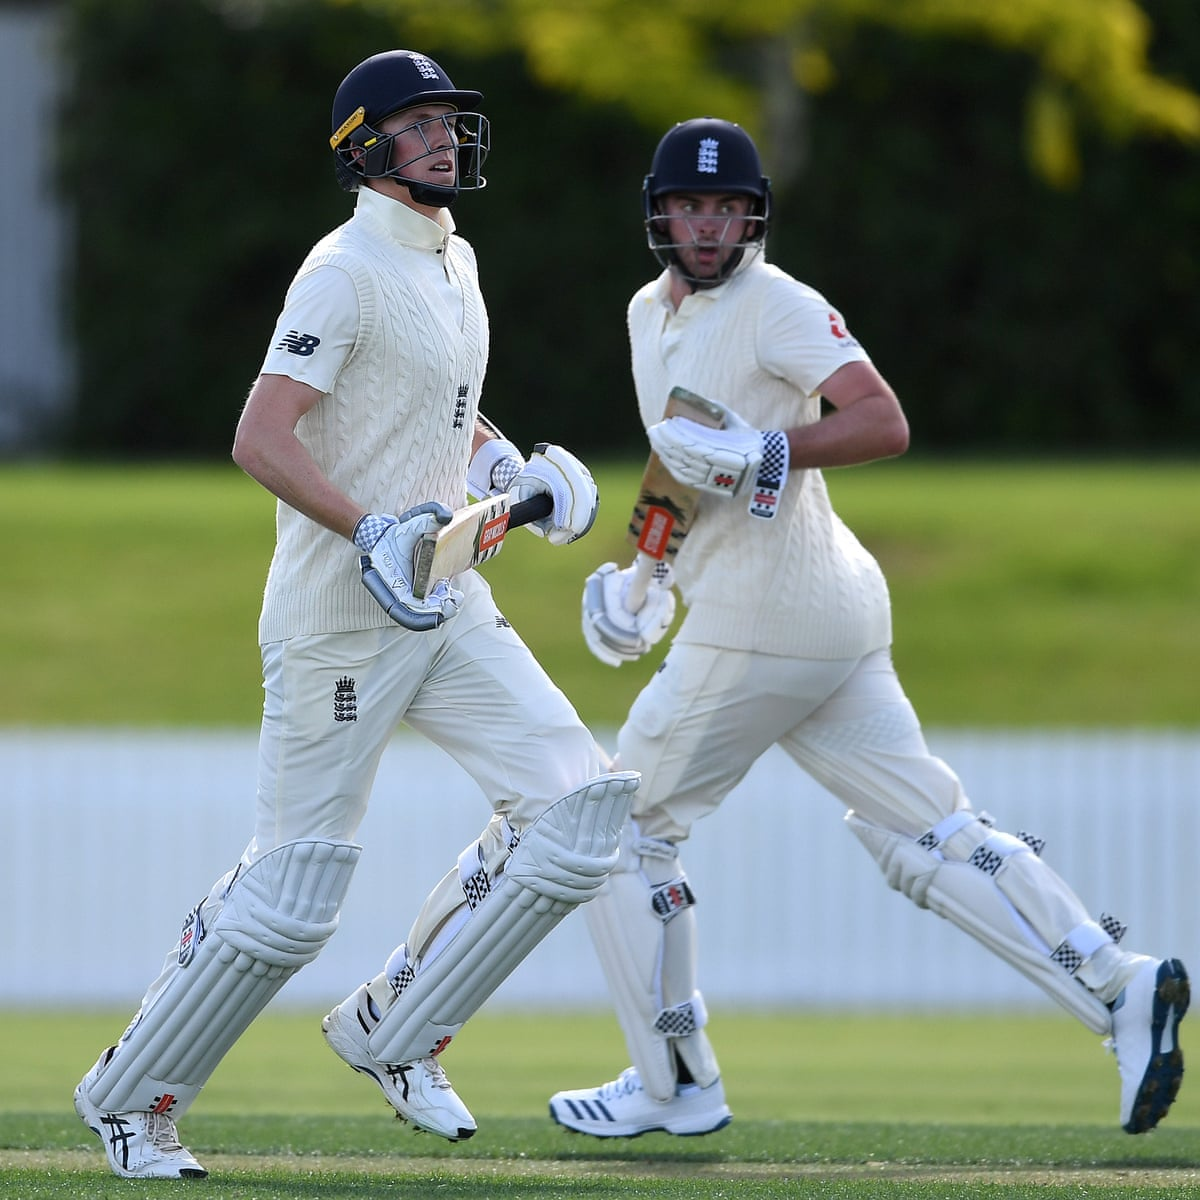 England's Dom Sibley and Zak Crawley record debut centuries in tour match |  Sport | The Guardian